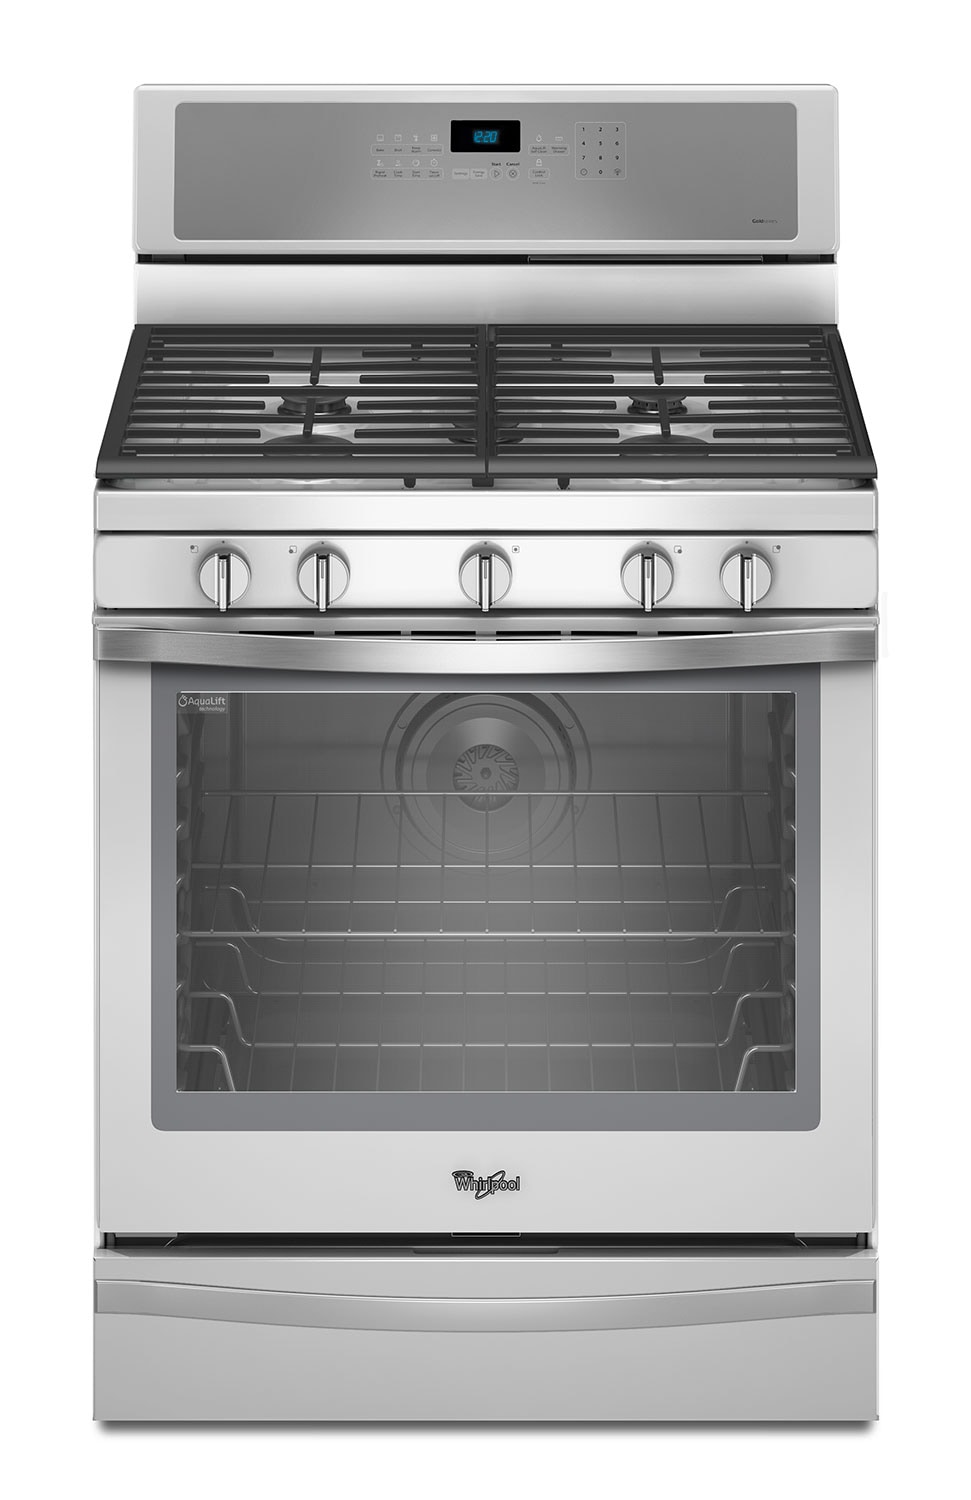 Cooking Products - Whirlpool White Ice Gas Convection Range (5.8 Cu. Ft.) - WFG715H0EH